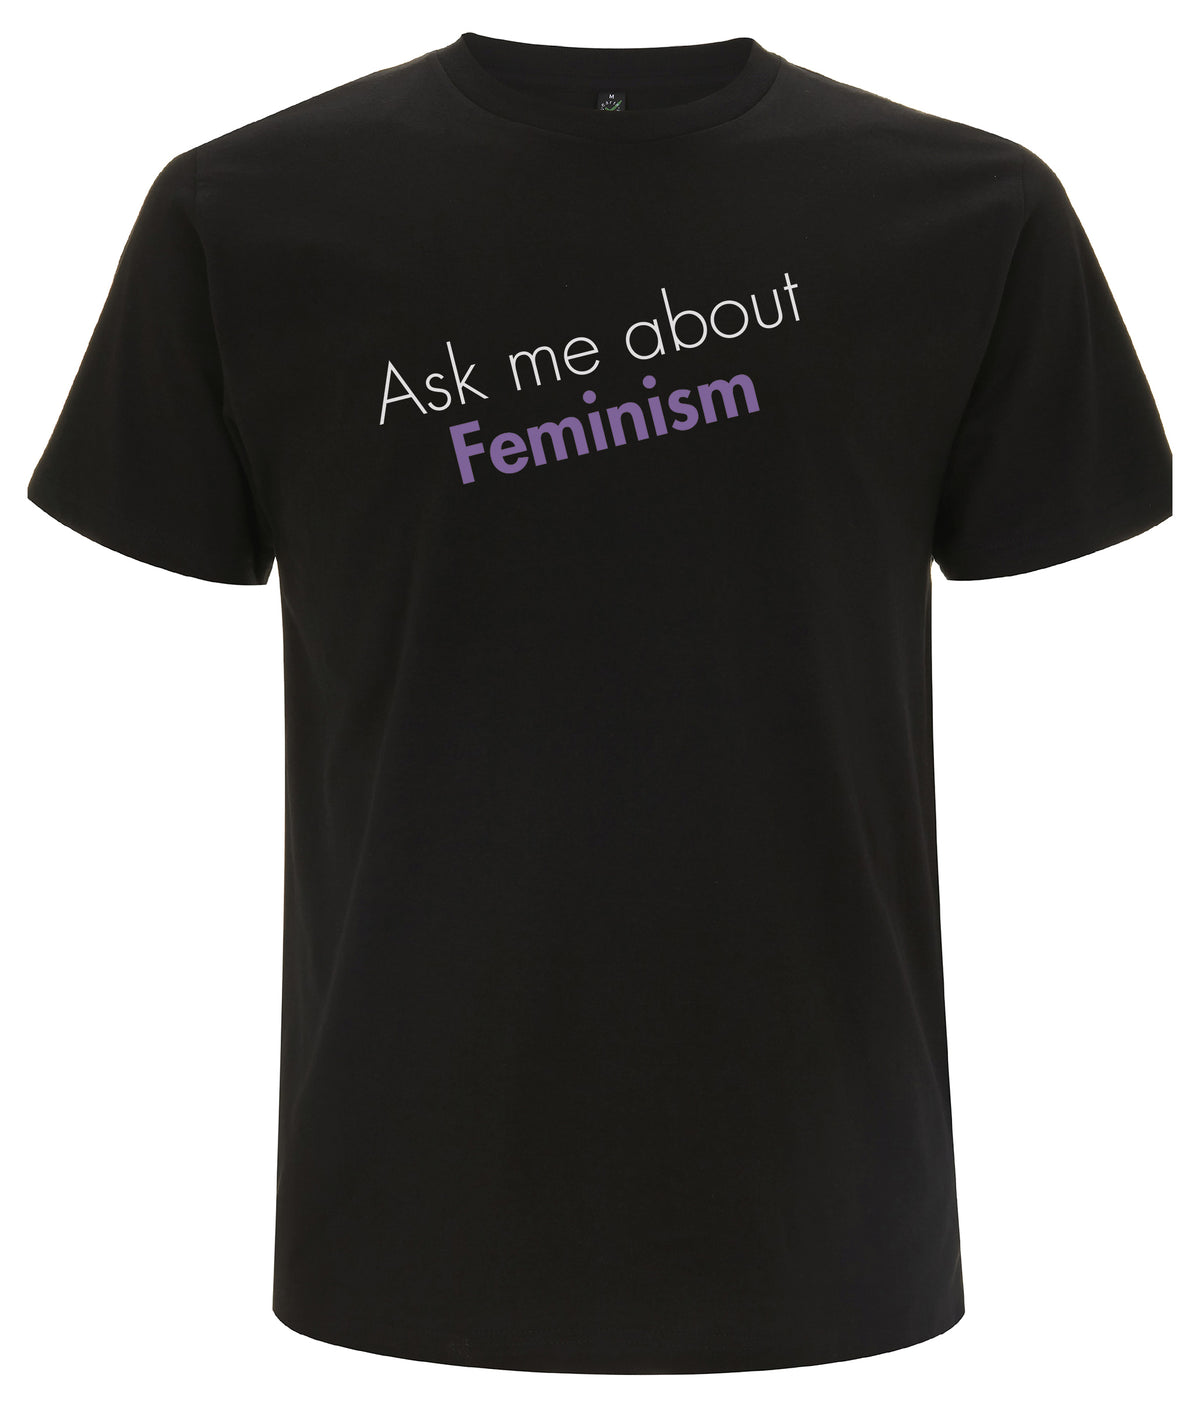 Ask Me About Feminism Organic Feminist T Shirt Black